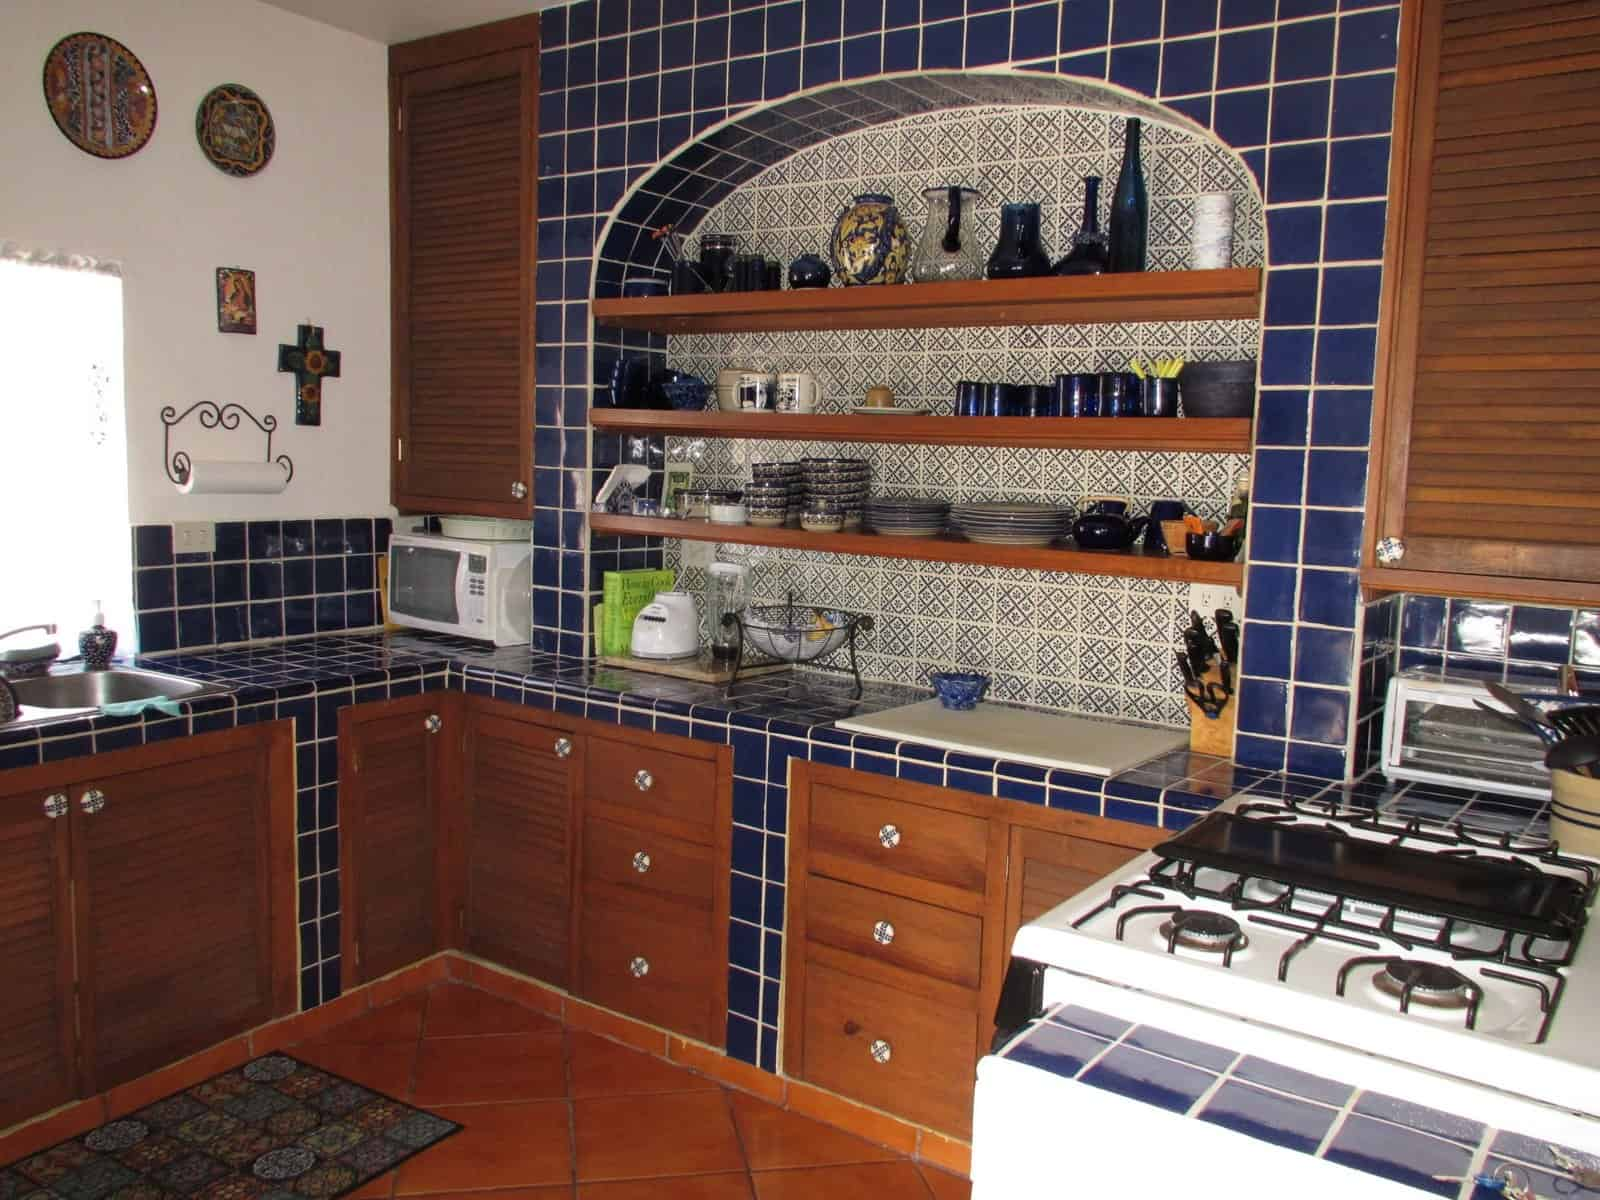 Kitchen Design And Tiles 44 Top Talavera Tile Design Ideas